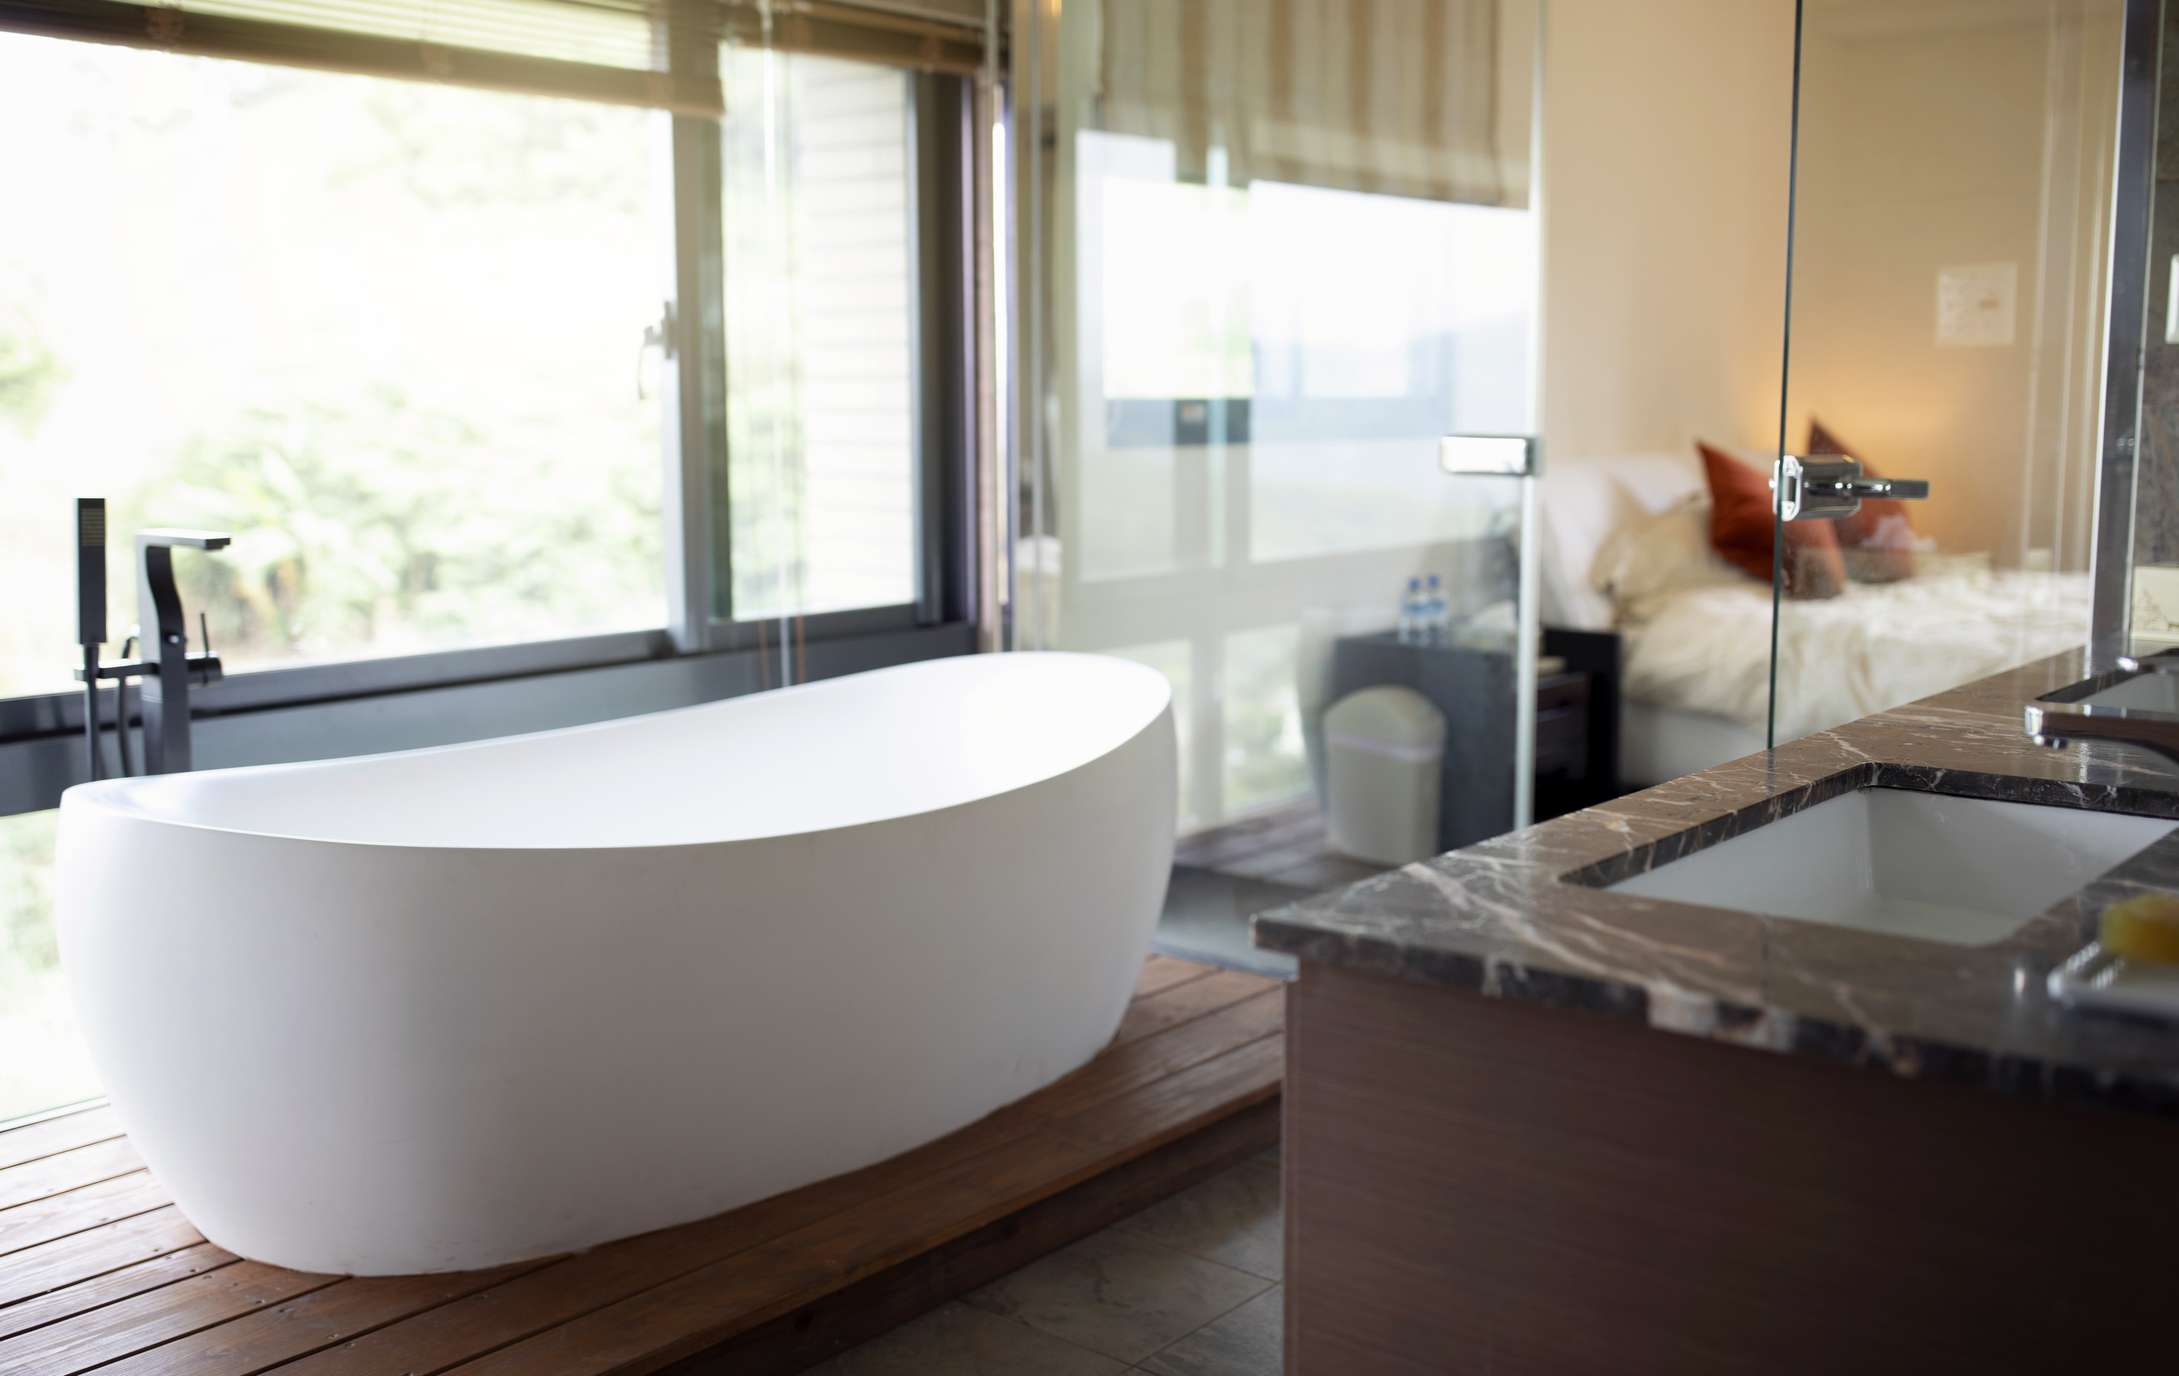 Bathroom fixtures and glass partitions may be cleaner longer because of PFAS